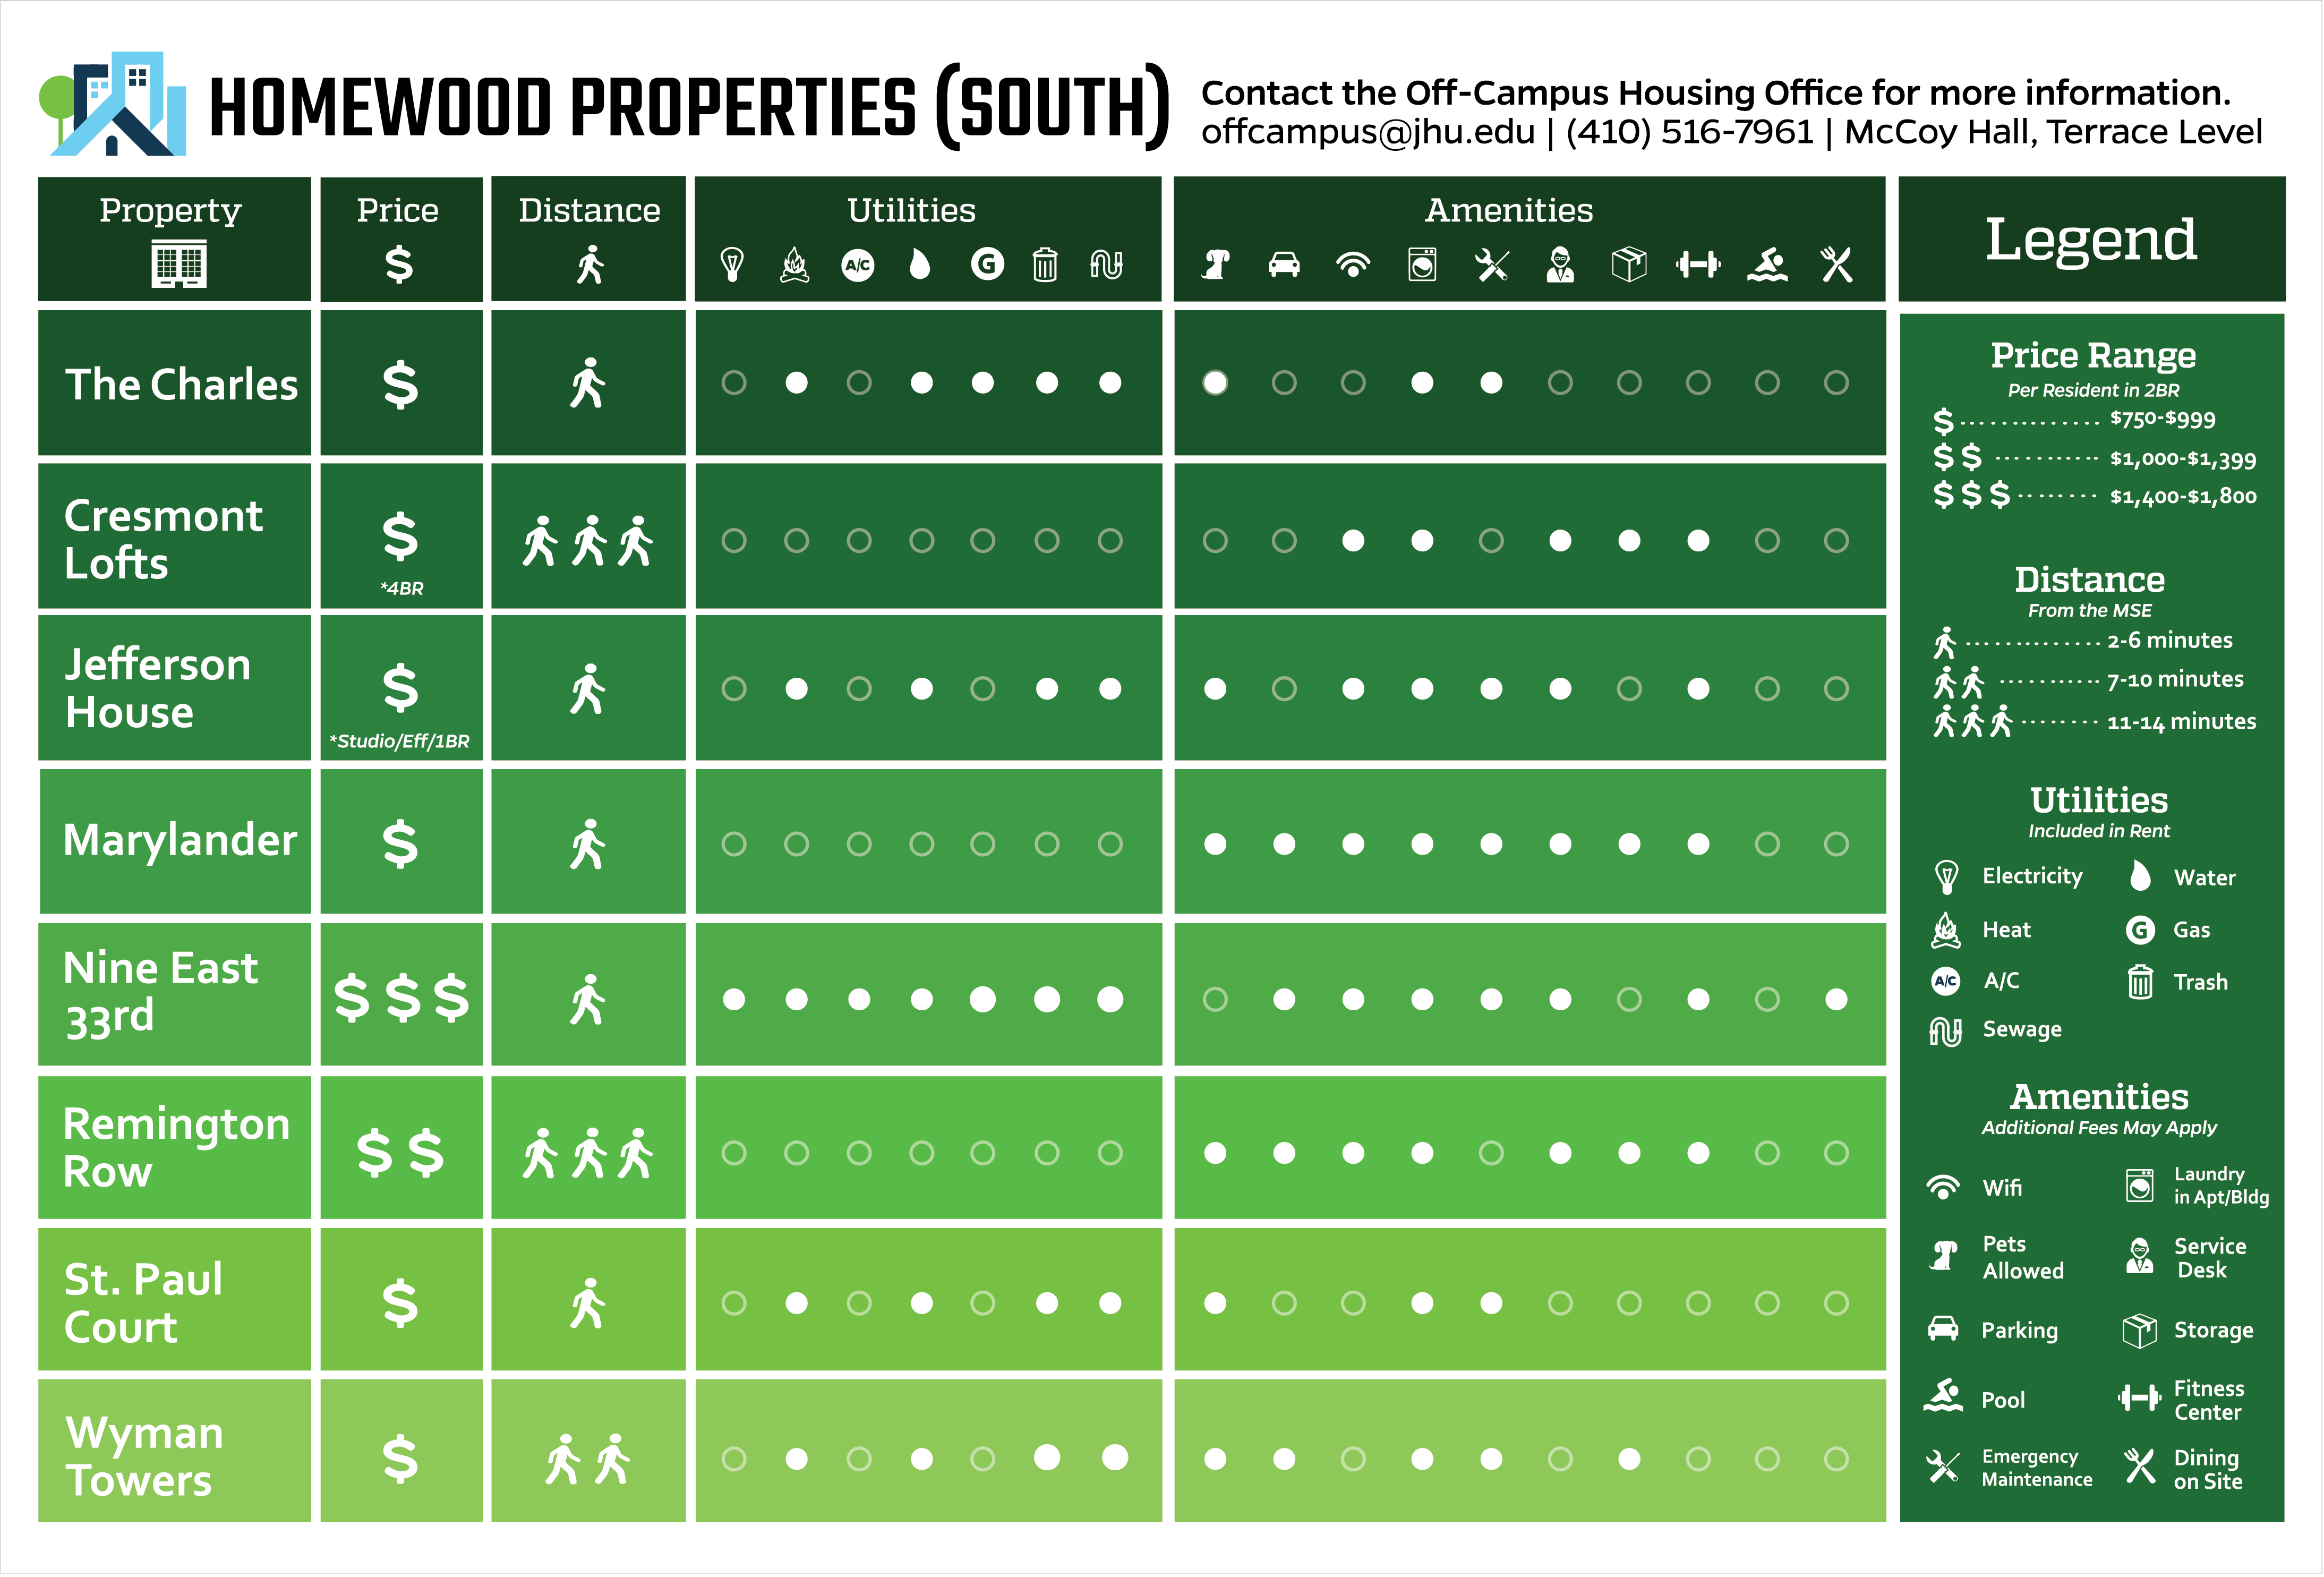 Comparison chart of south properties and their amenities near Homewood campus.